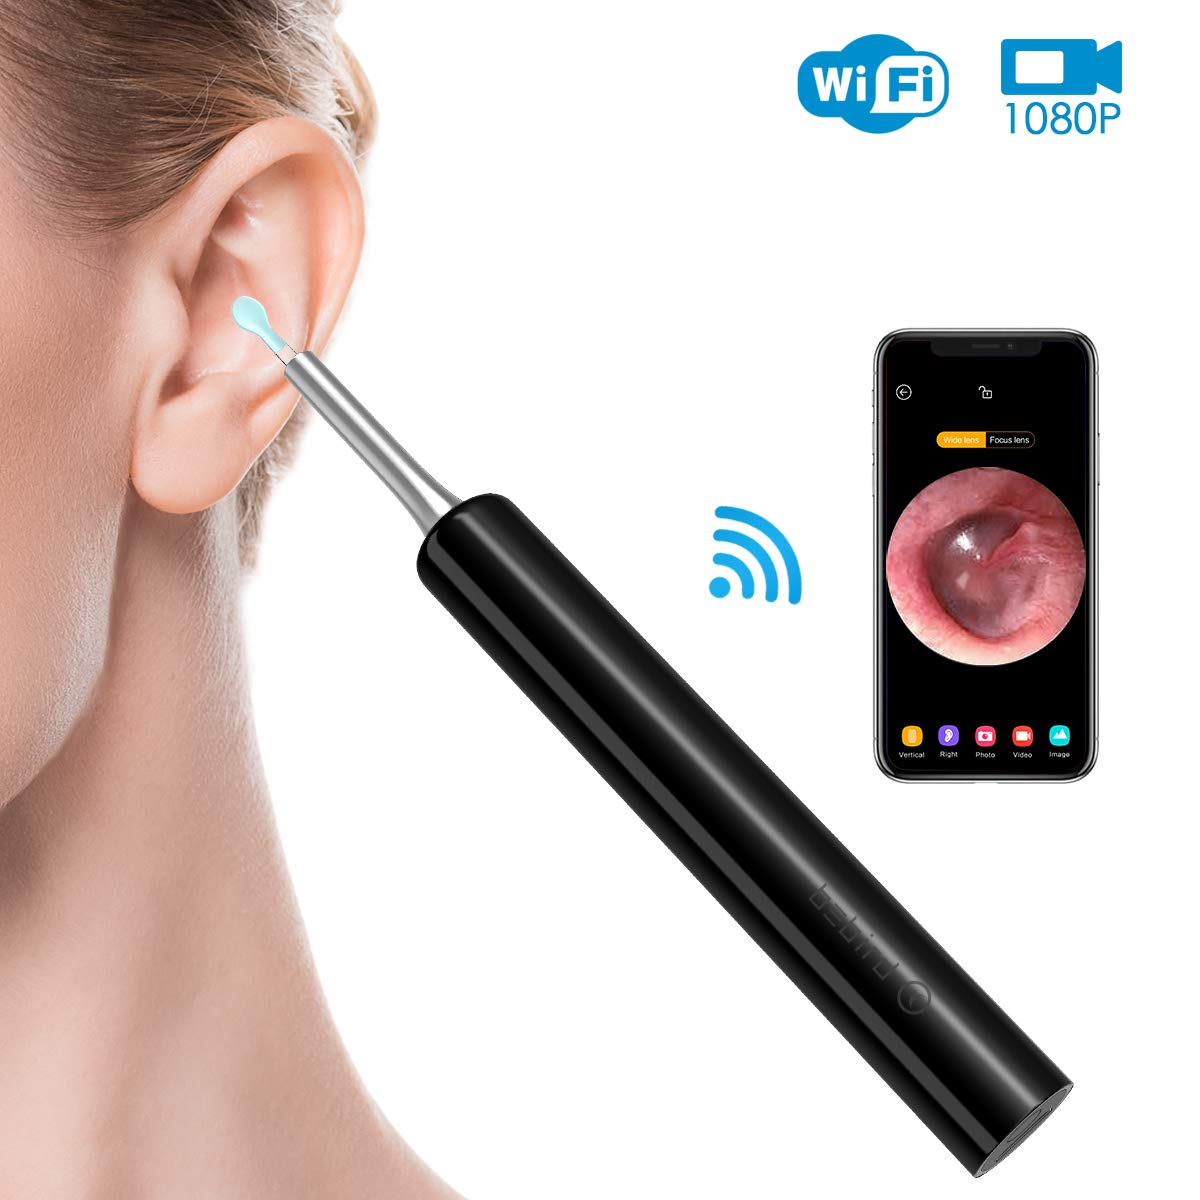 Wireless Digital Otoscope, LOFTer Upgraded 3.9mm 1080P FHD Ear Camera Set, Super Light Ear Wax Remover Tool with Temperature Control Chip, Compatible with Android iOS Smartphone and Tablet (Black)